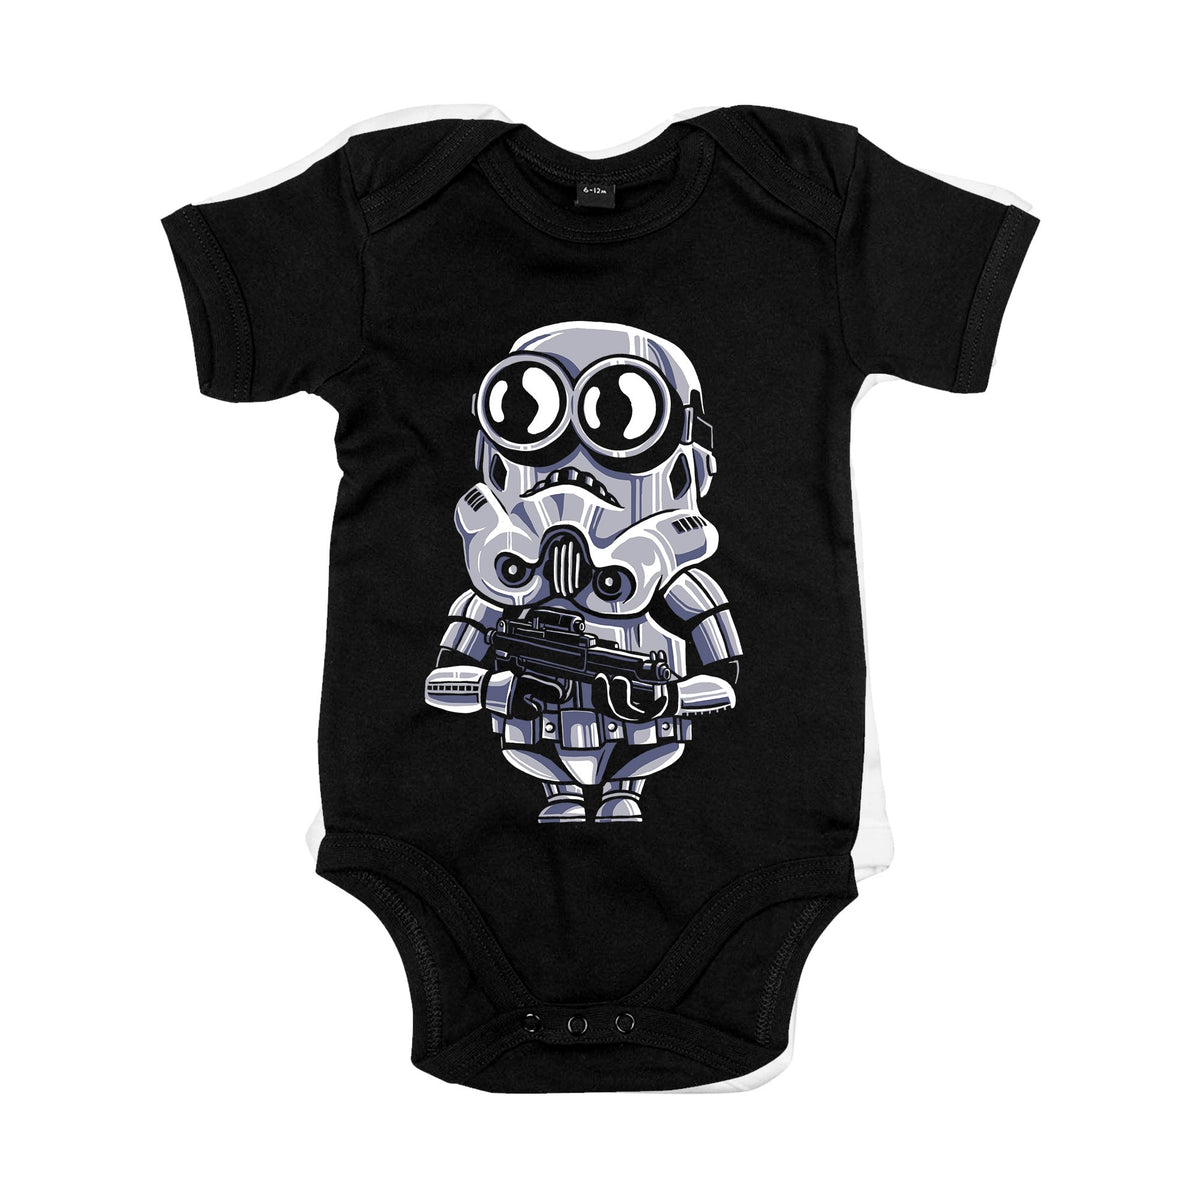 Minion Trooper Primate Novelty Baby Vest 0-3 Months